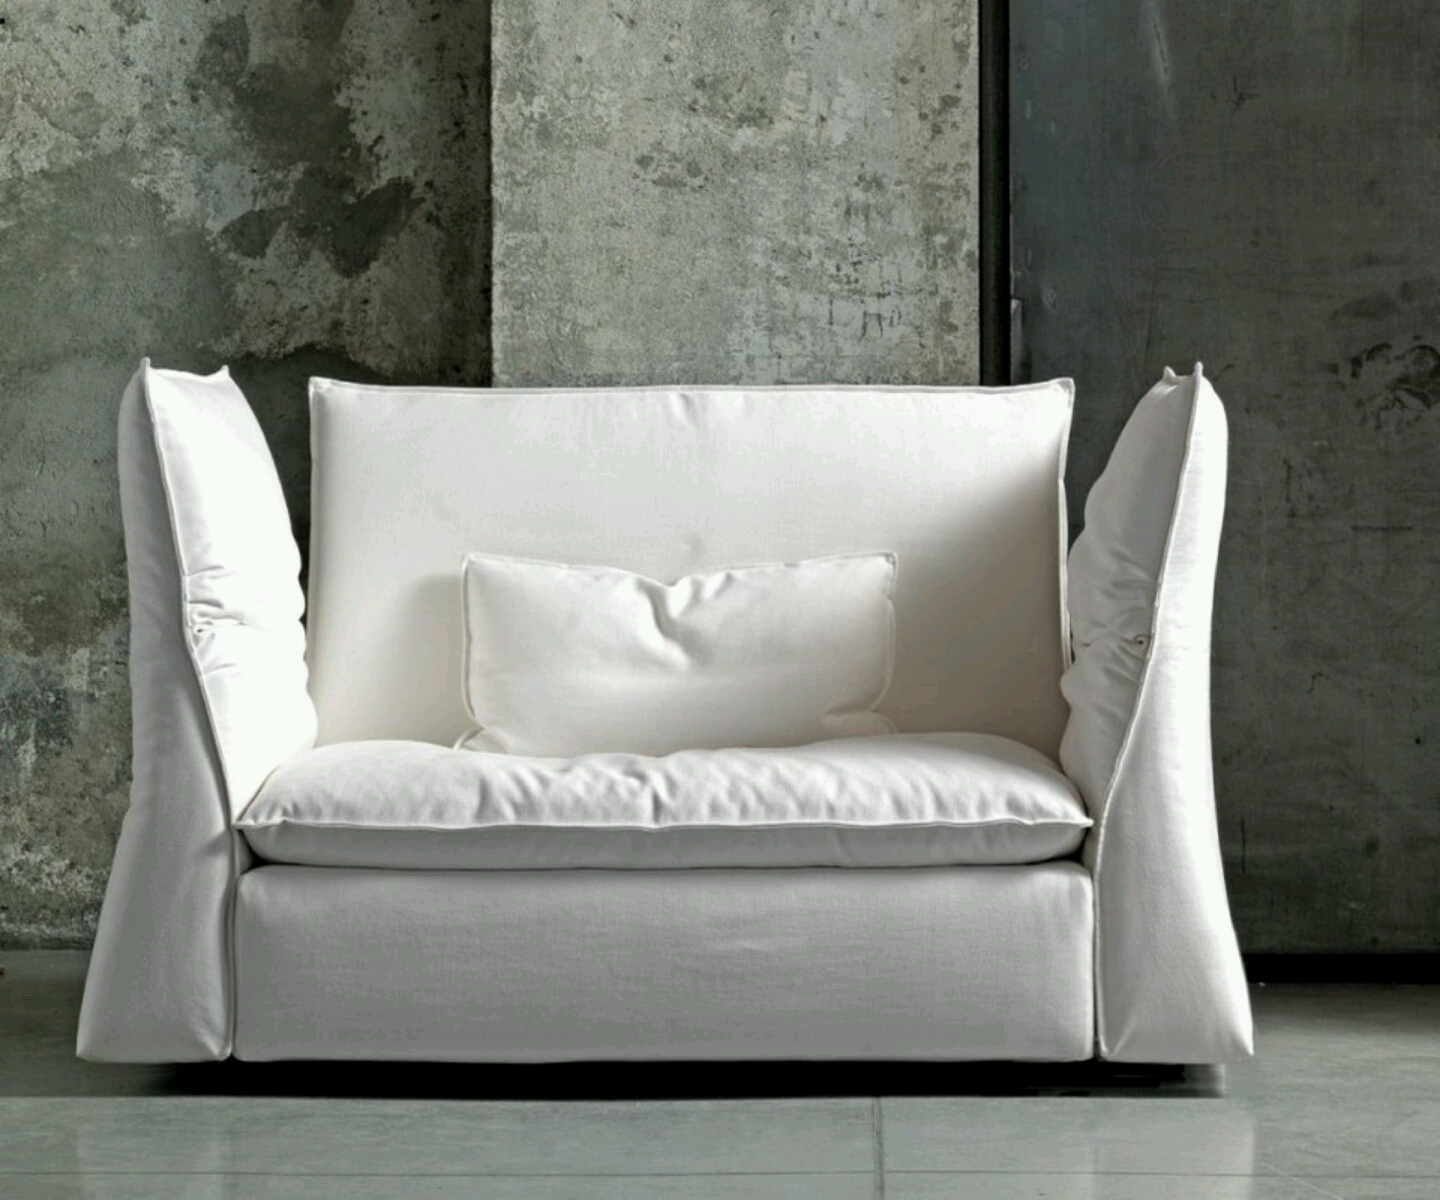 Beautiful modern sofa designs models an interior design for Modern style sofa